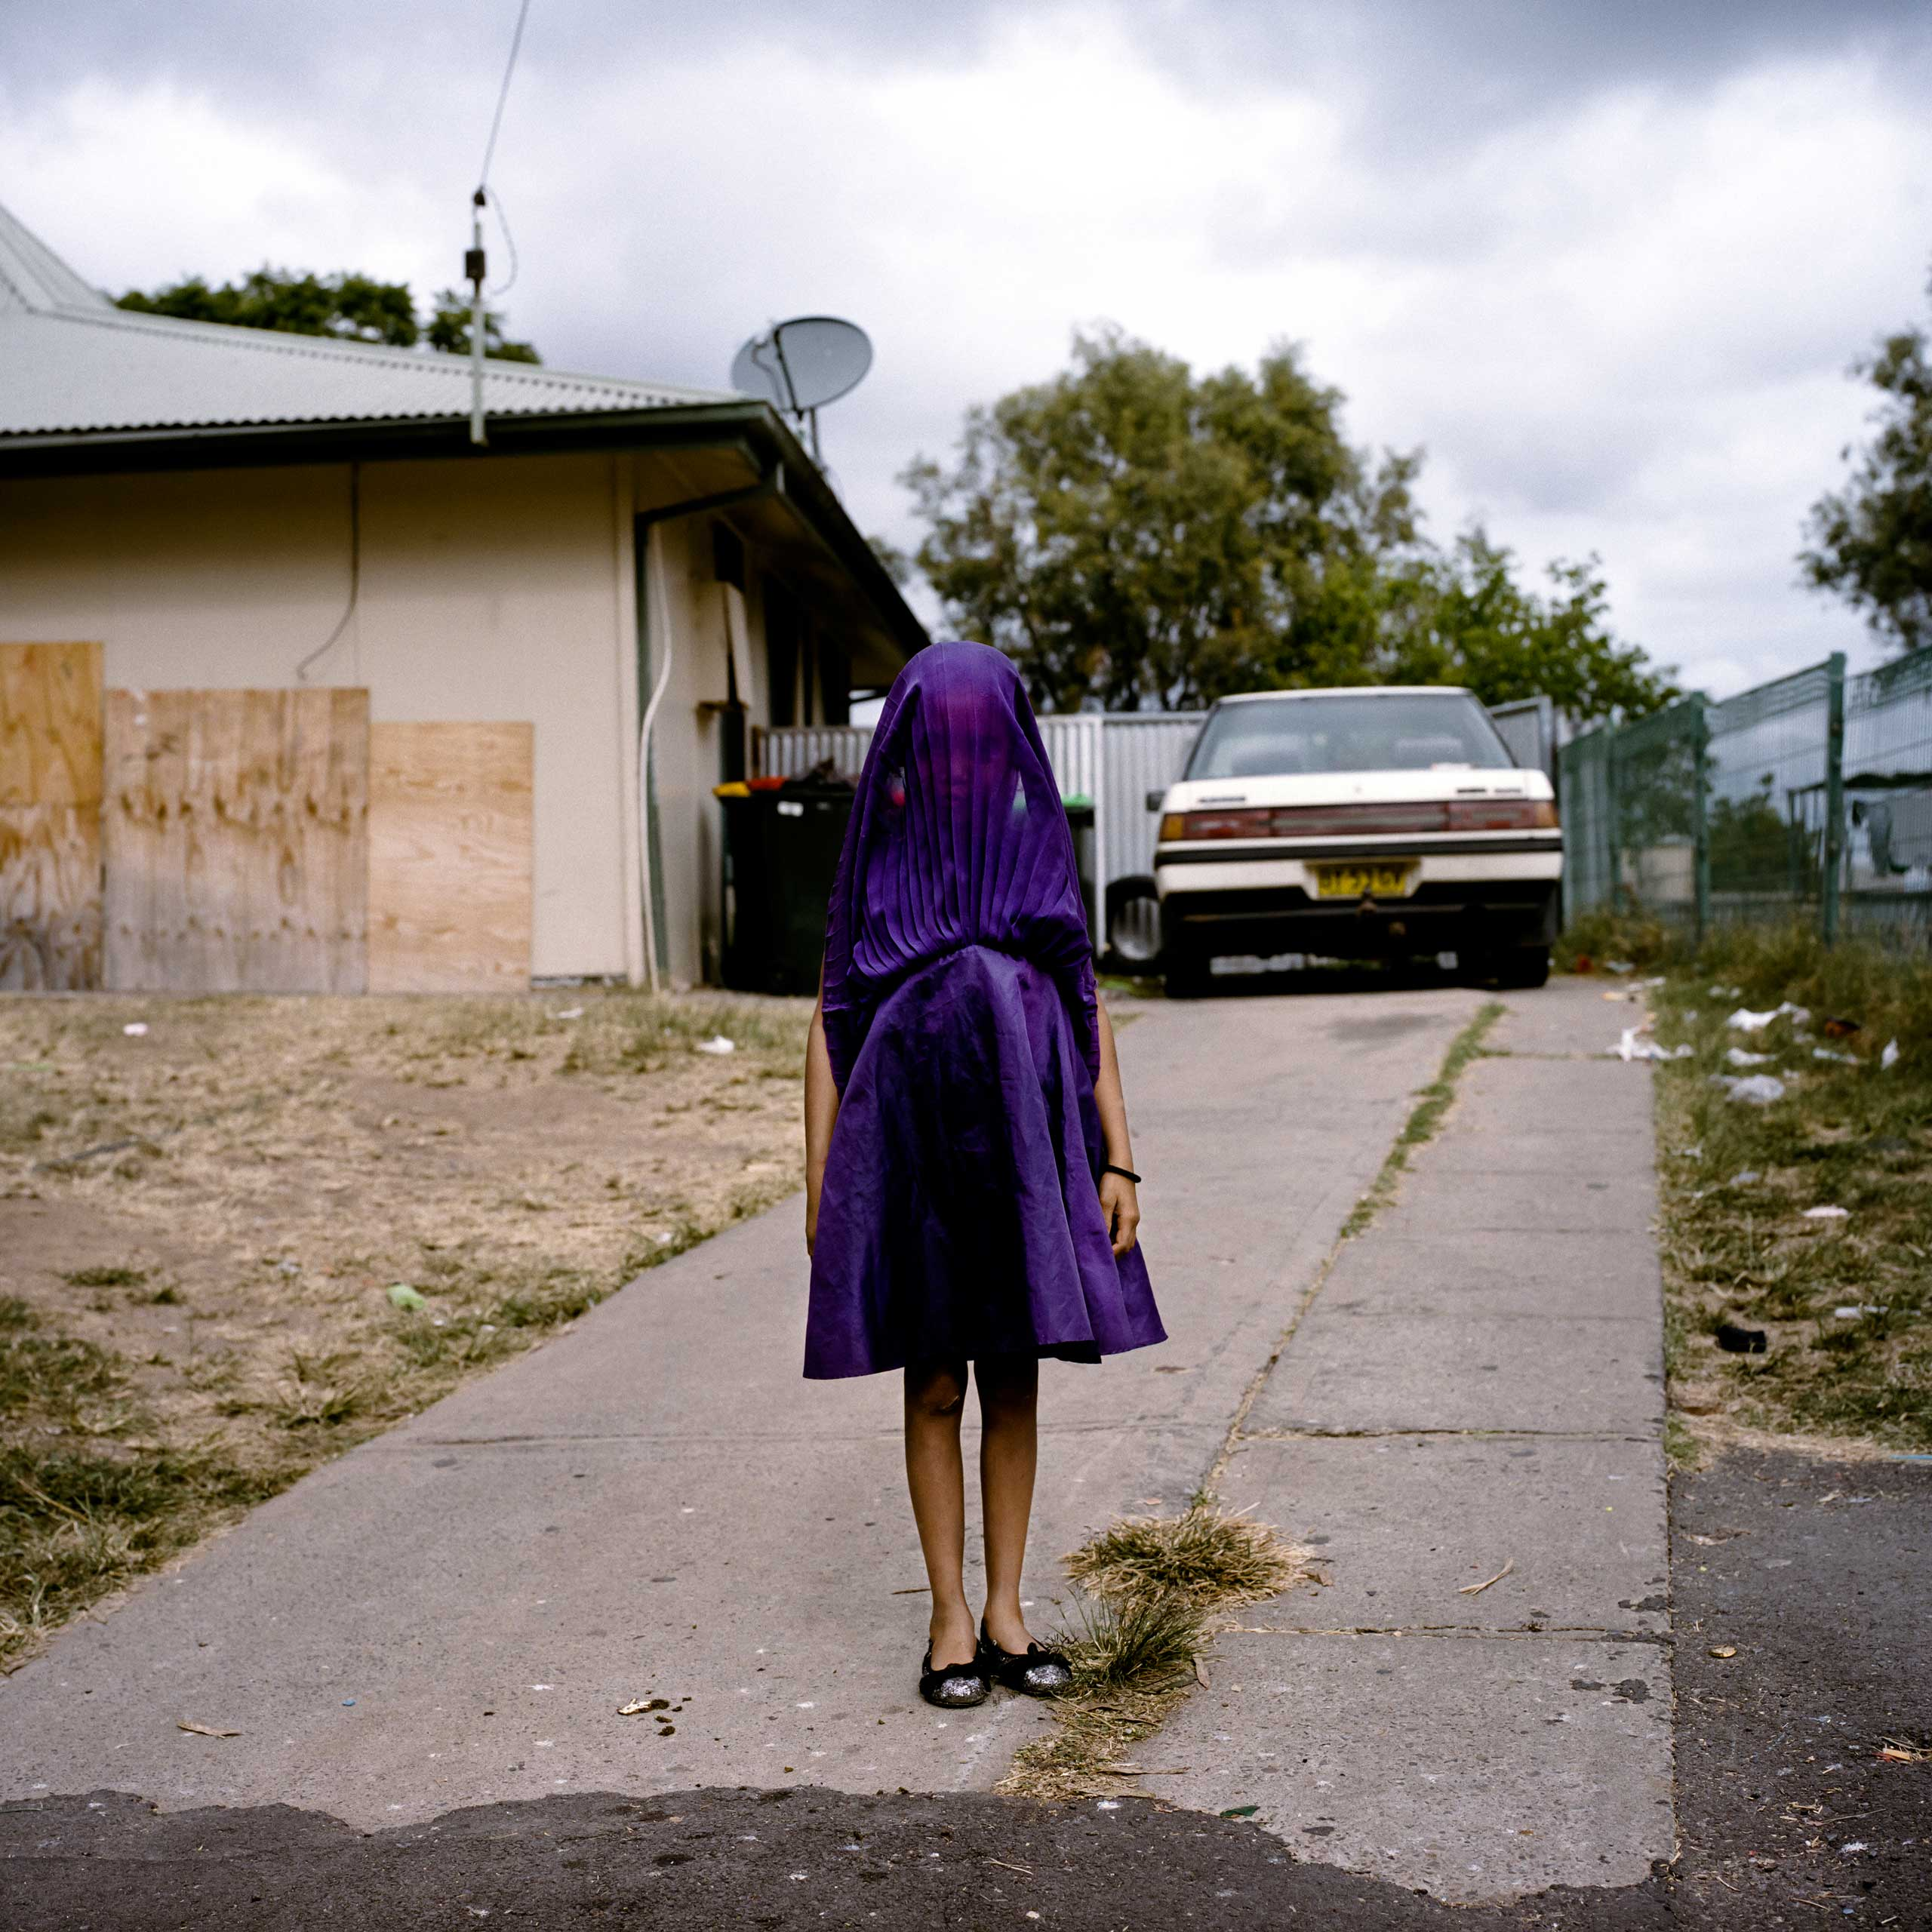 <b>First Prize Portraits Category, Singles</b>Laurinda waits in her purple dress for the bus that will take her to Sunday School, Moree, New South Wales, Australia.